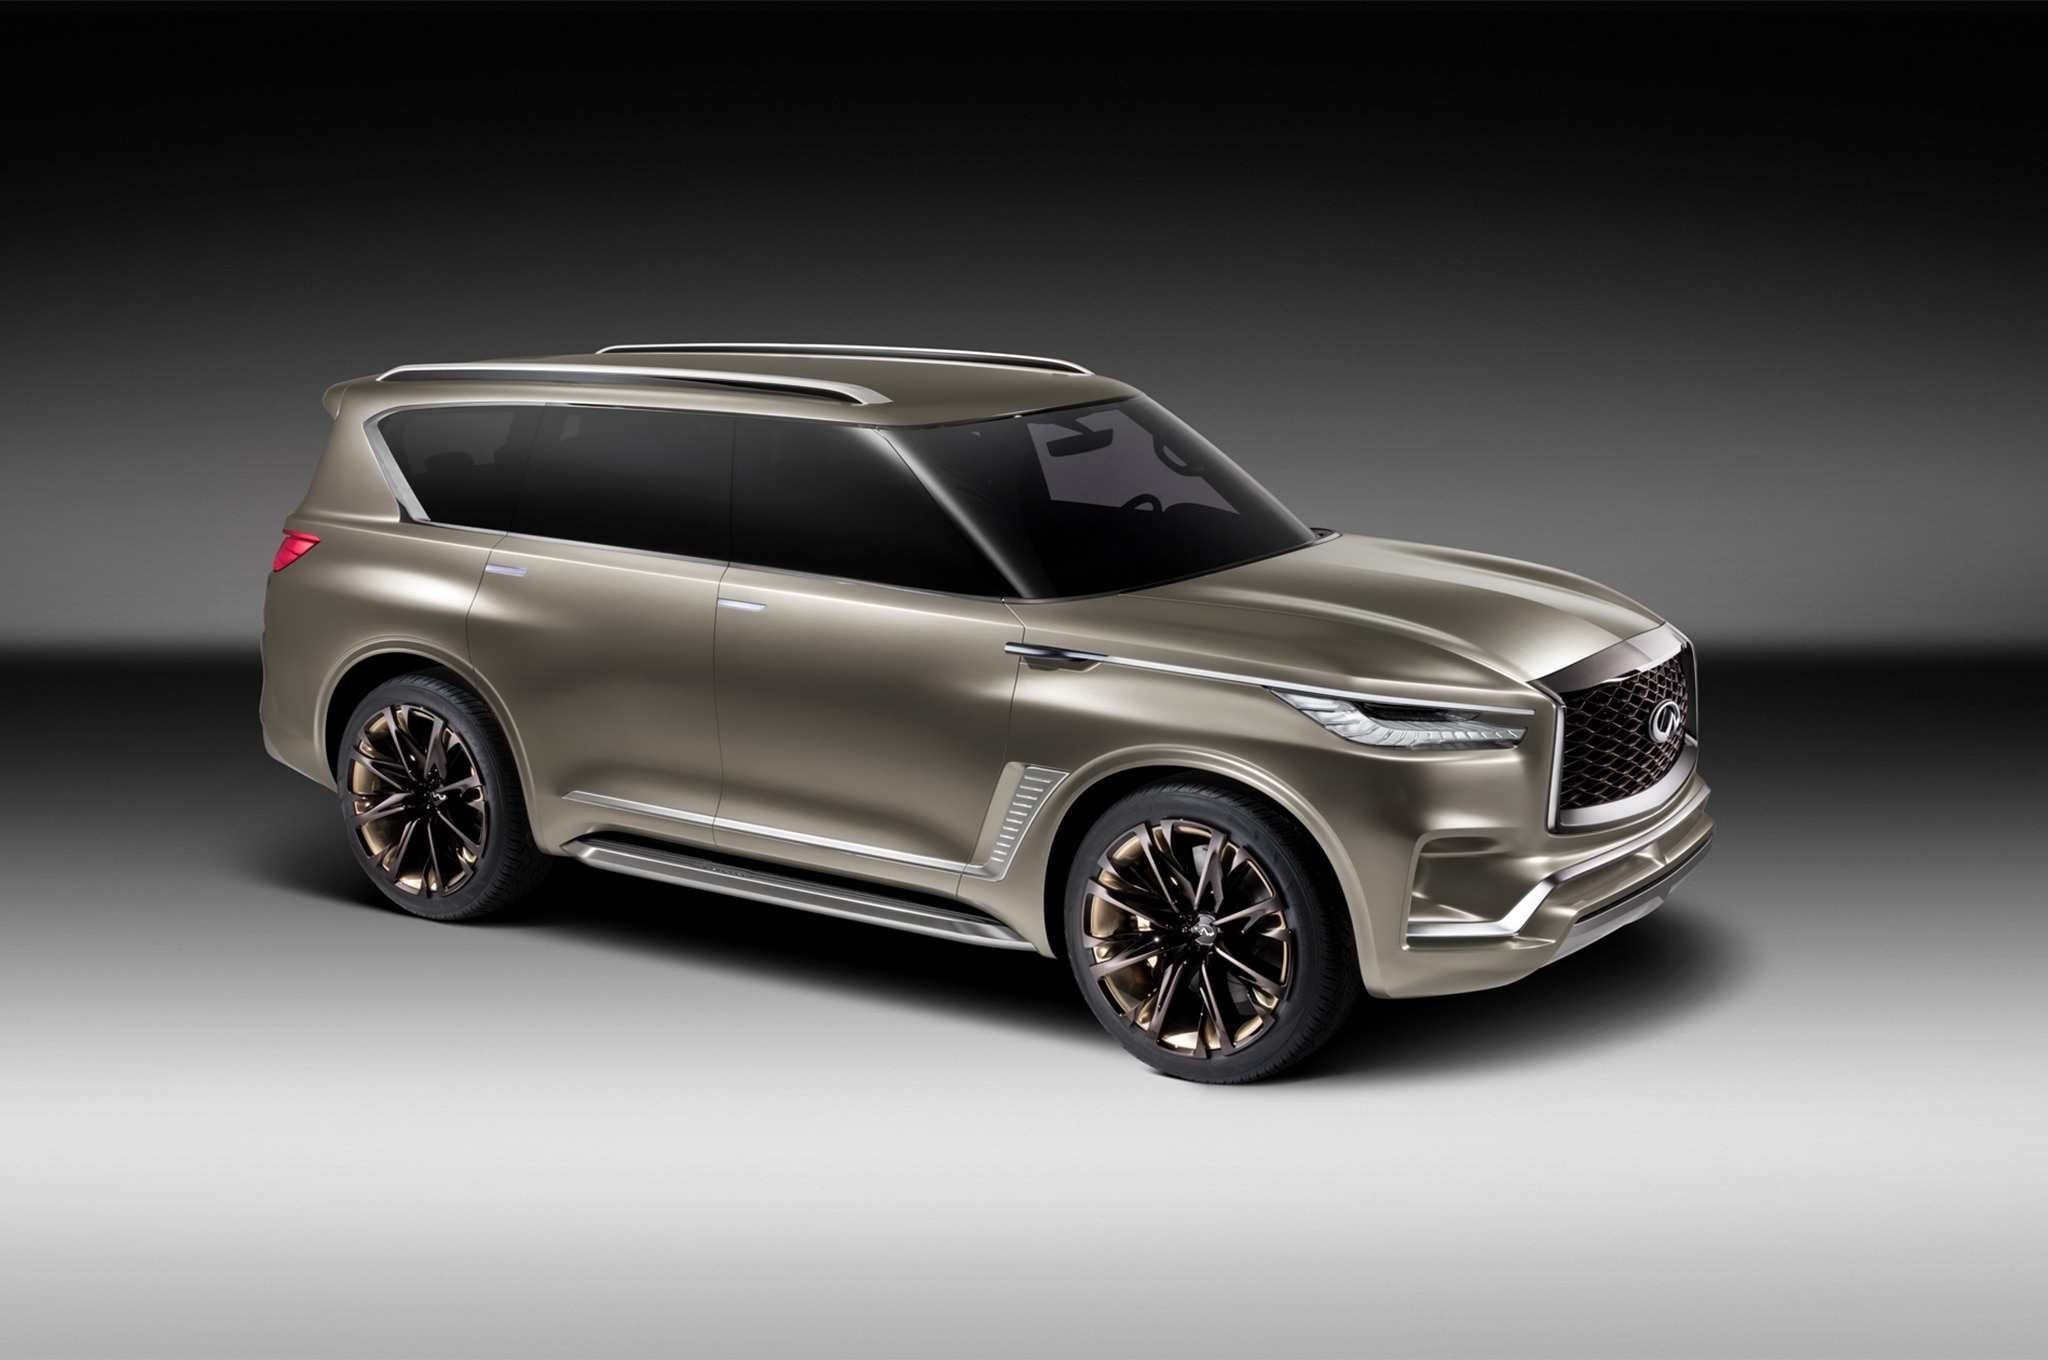 58 New 2019 Infiniti Qx80 Monograph Reviews